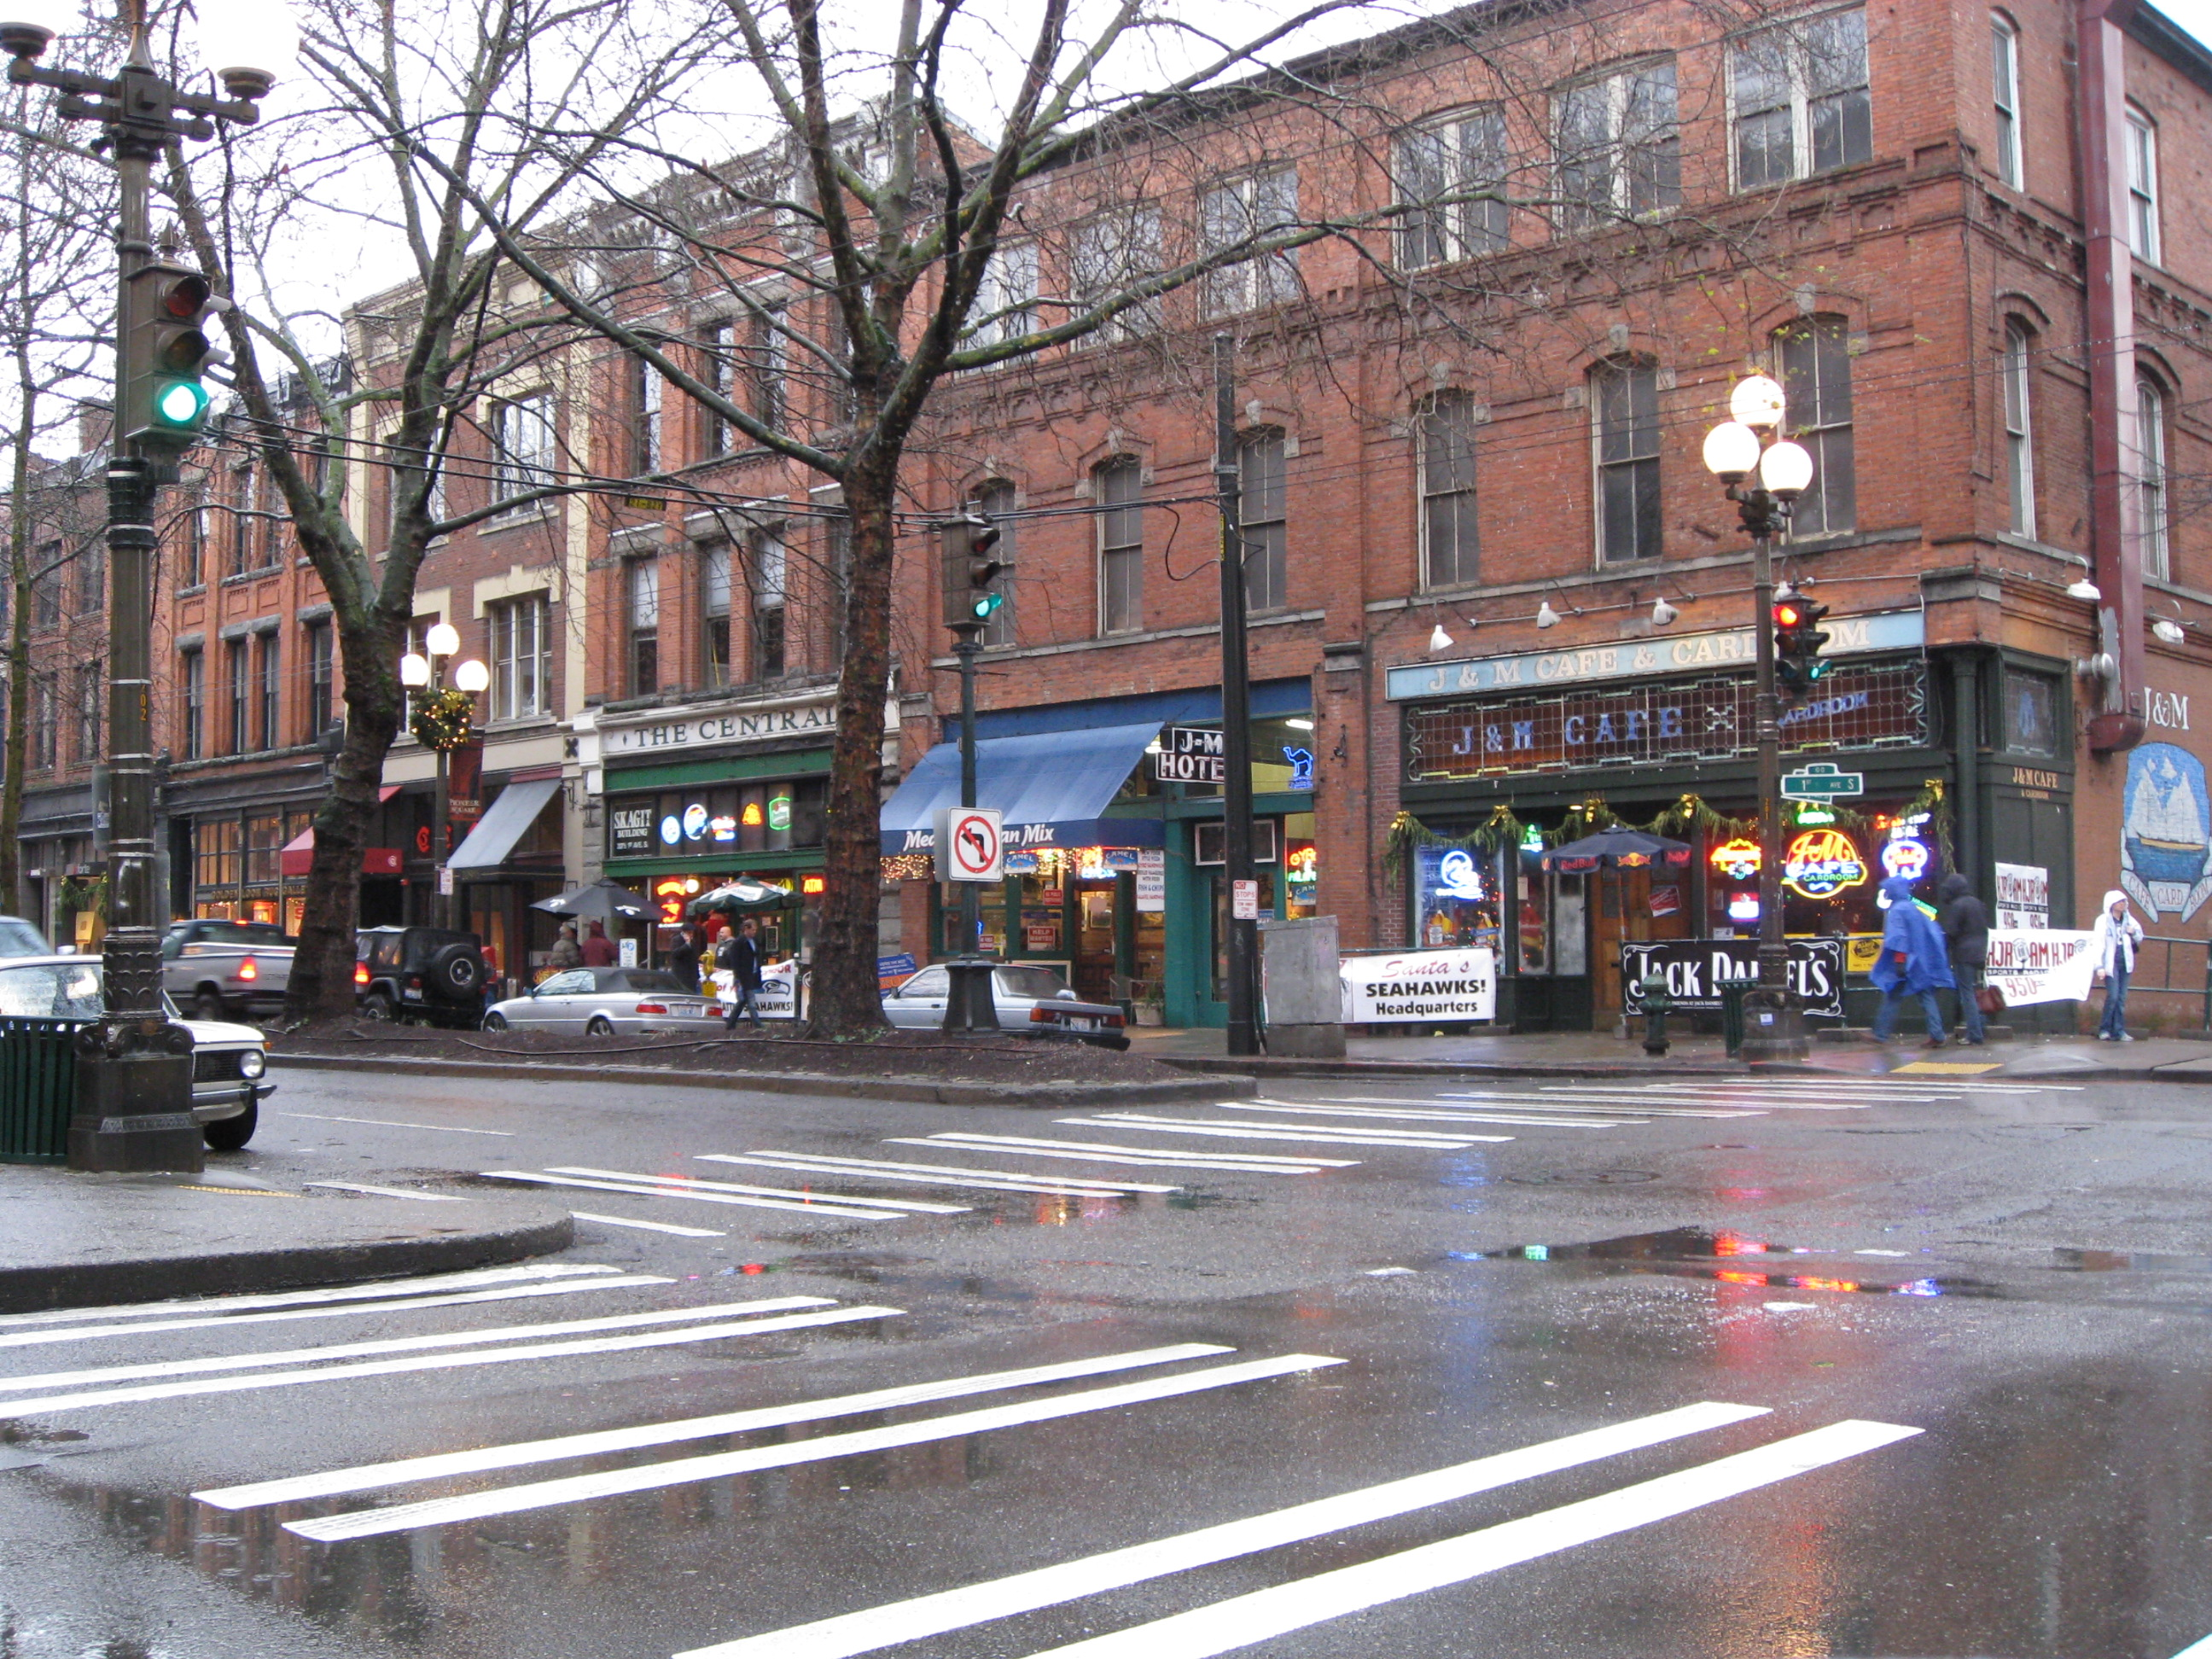 Pioneer Square – J&M Cafe – 1st Ave